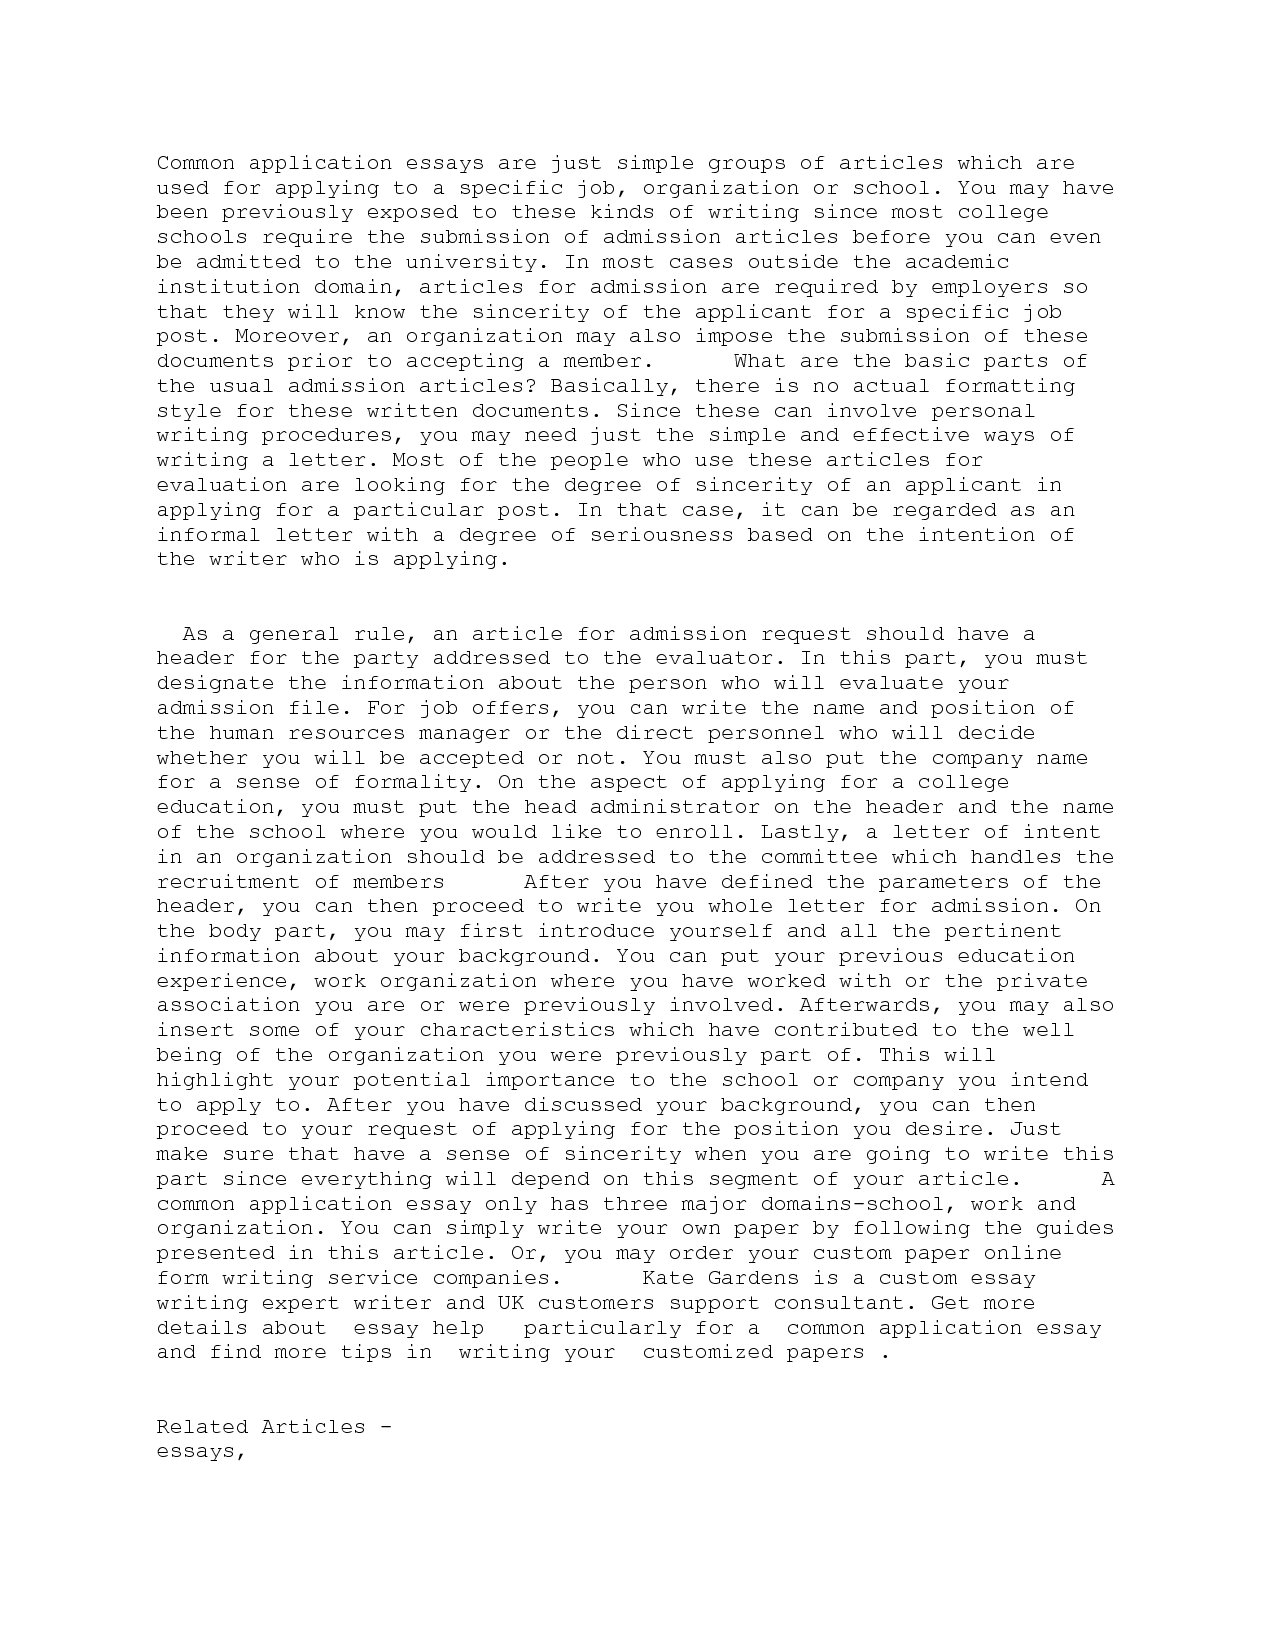 015 Common App College Essay Example Examples Of Essays For Application Transfer Ess Striking Word Limit Topics Samples Full